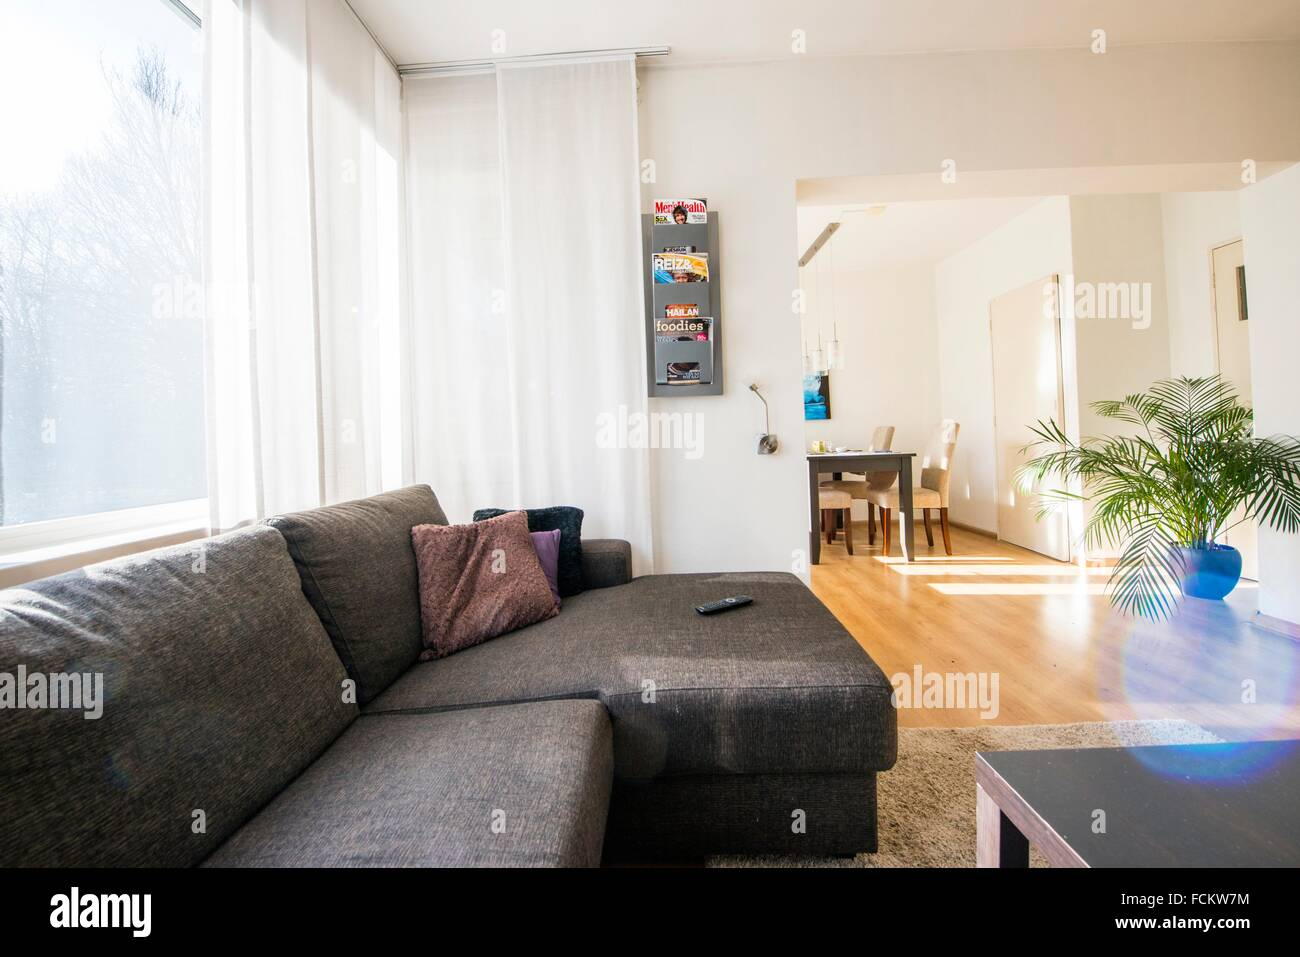 Living Room In An Apartment, Owned By A Regular Couch Surfing Host